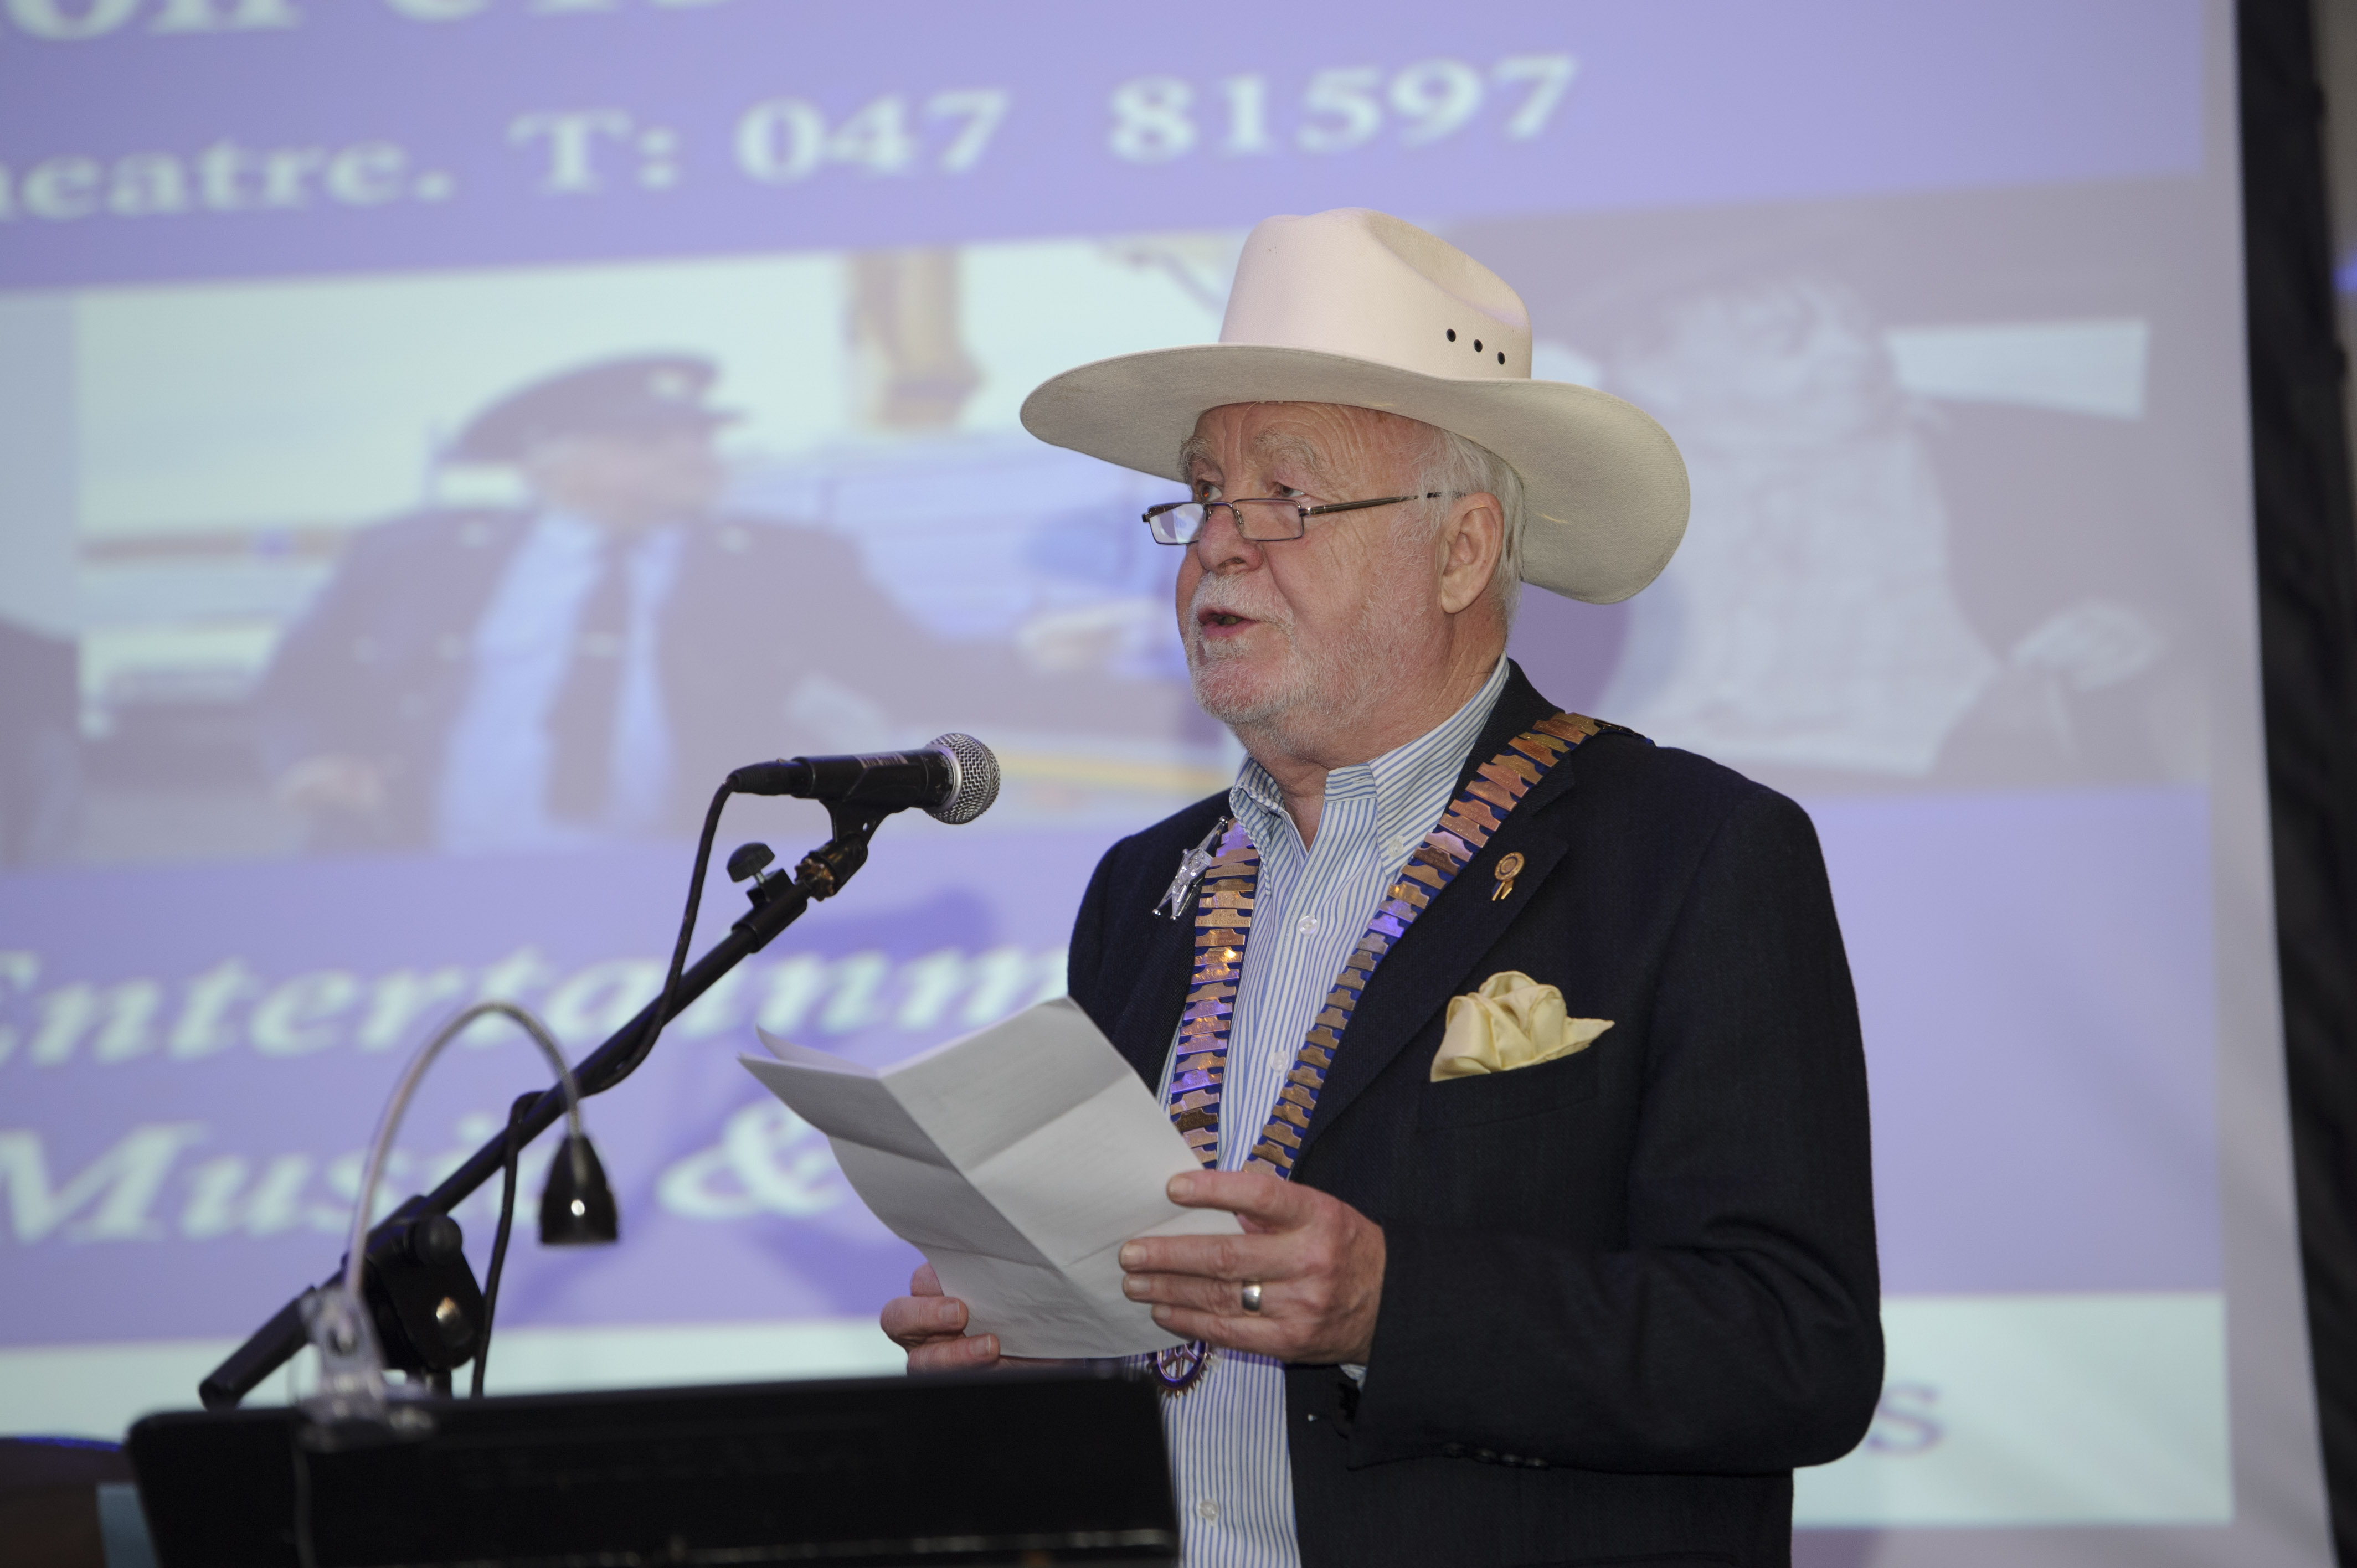 District Governor of Rotary Ireland, Declan Tyner, speaking at the Pat The President's Country Music & Western Night for Monaghan Rotary Club in The Hillgrove Hotel. ©Rory Geary/The Northern Standard